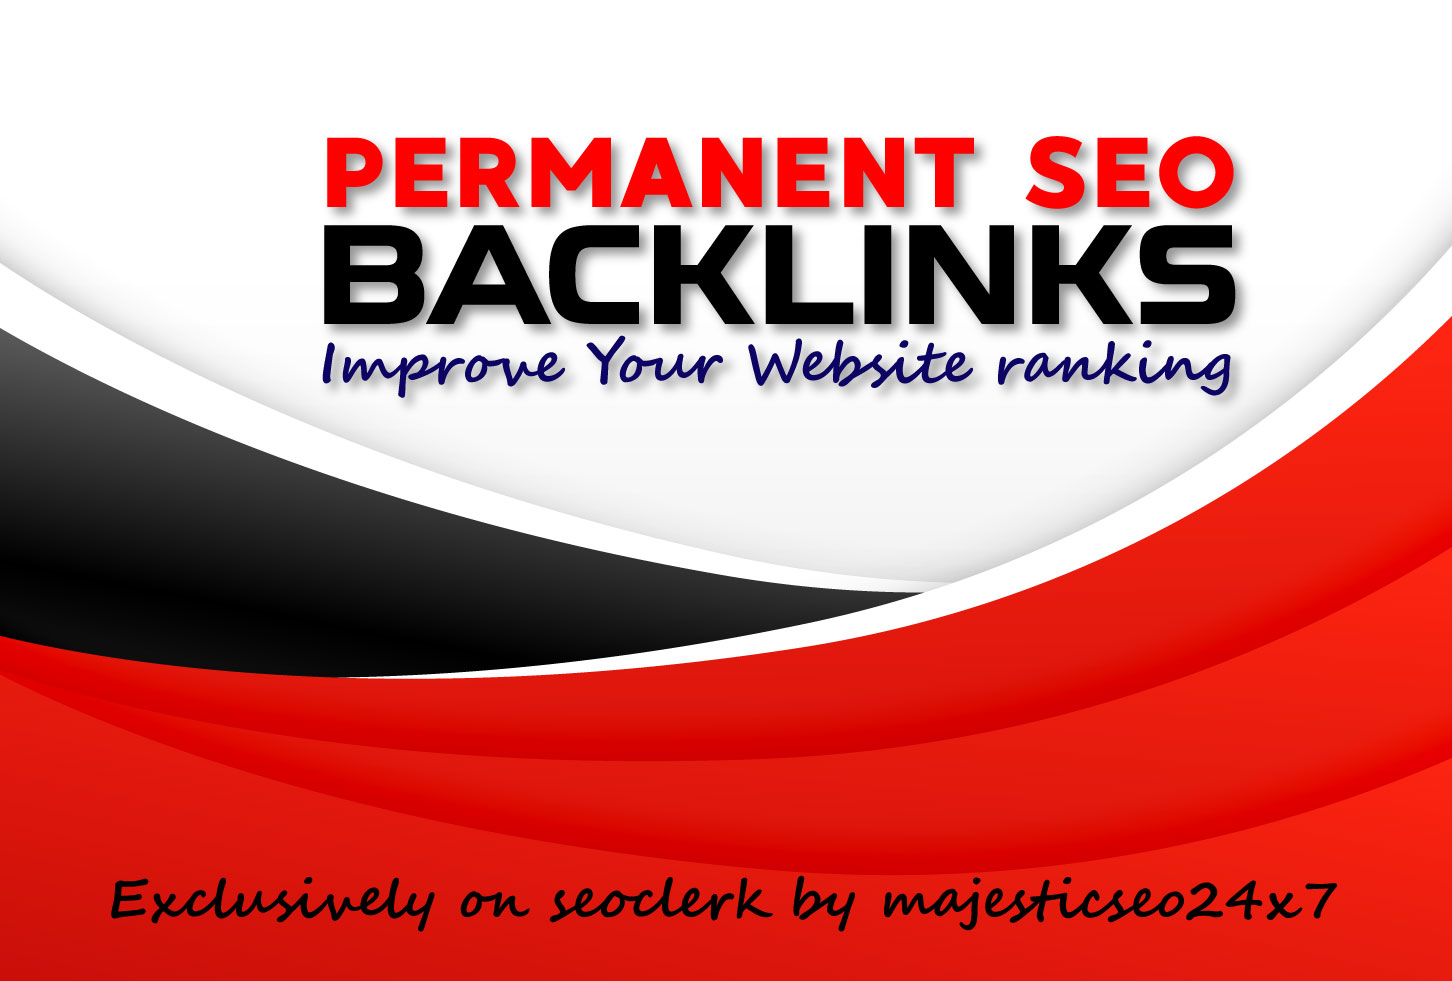 65 permanent SEO backlinks with link building for high google ranking